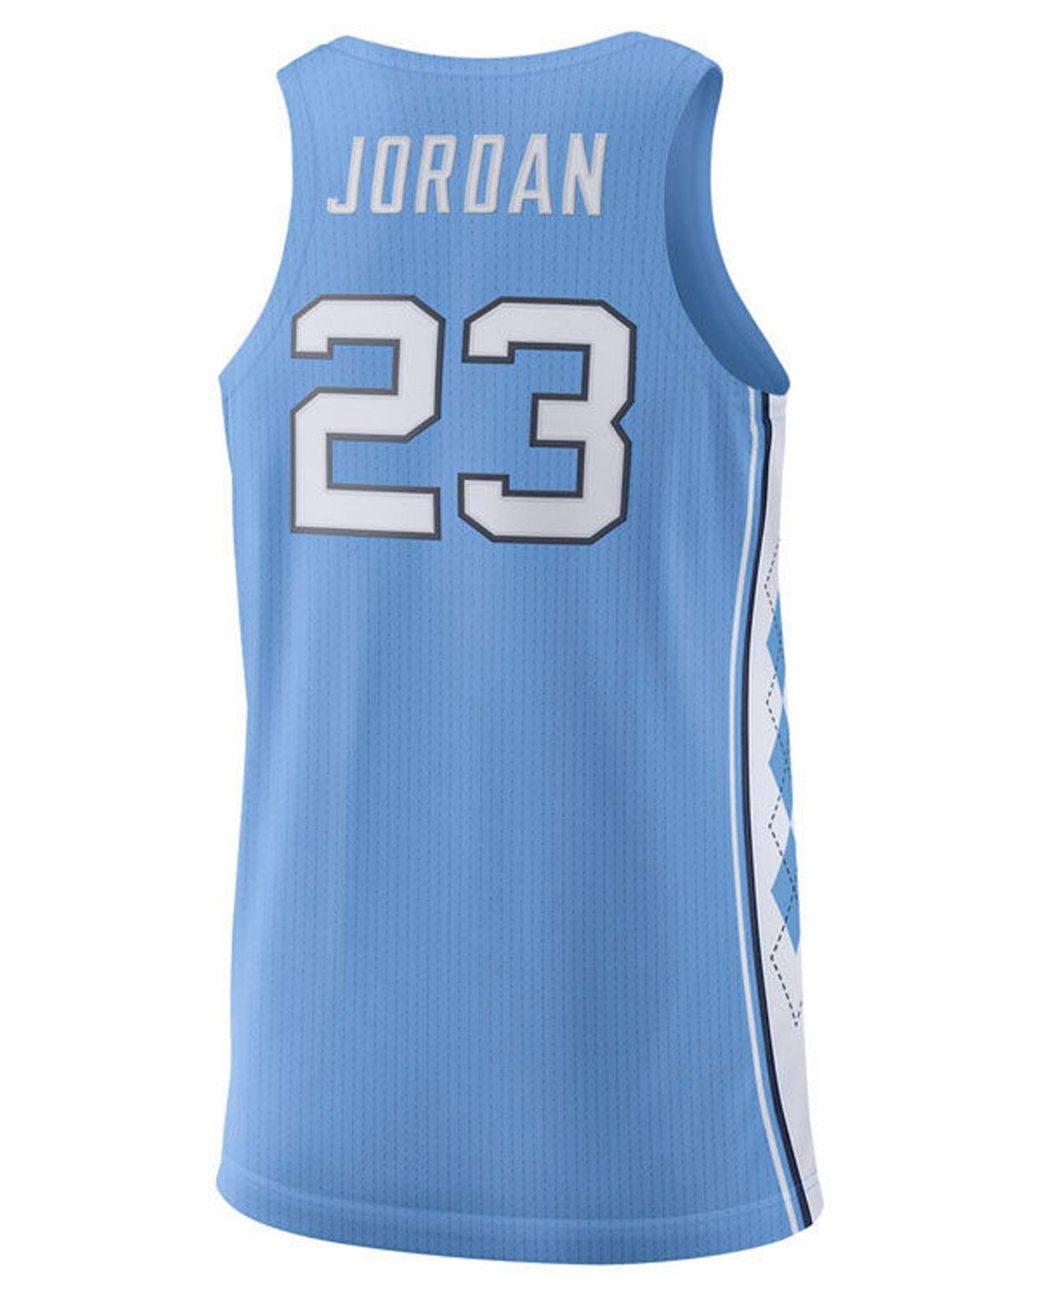 lowest price 65f0f 8197b Men's Blue Michael Jordan North Carolina Tar Heels Authentic Basketball  Jersey